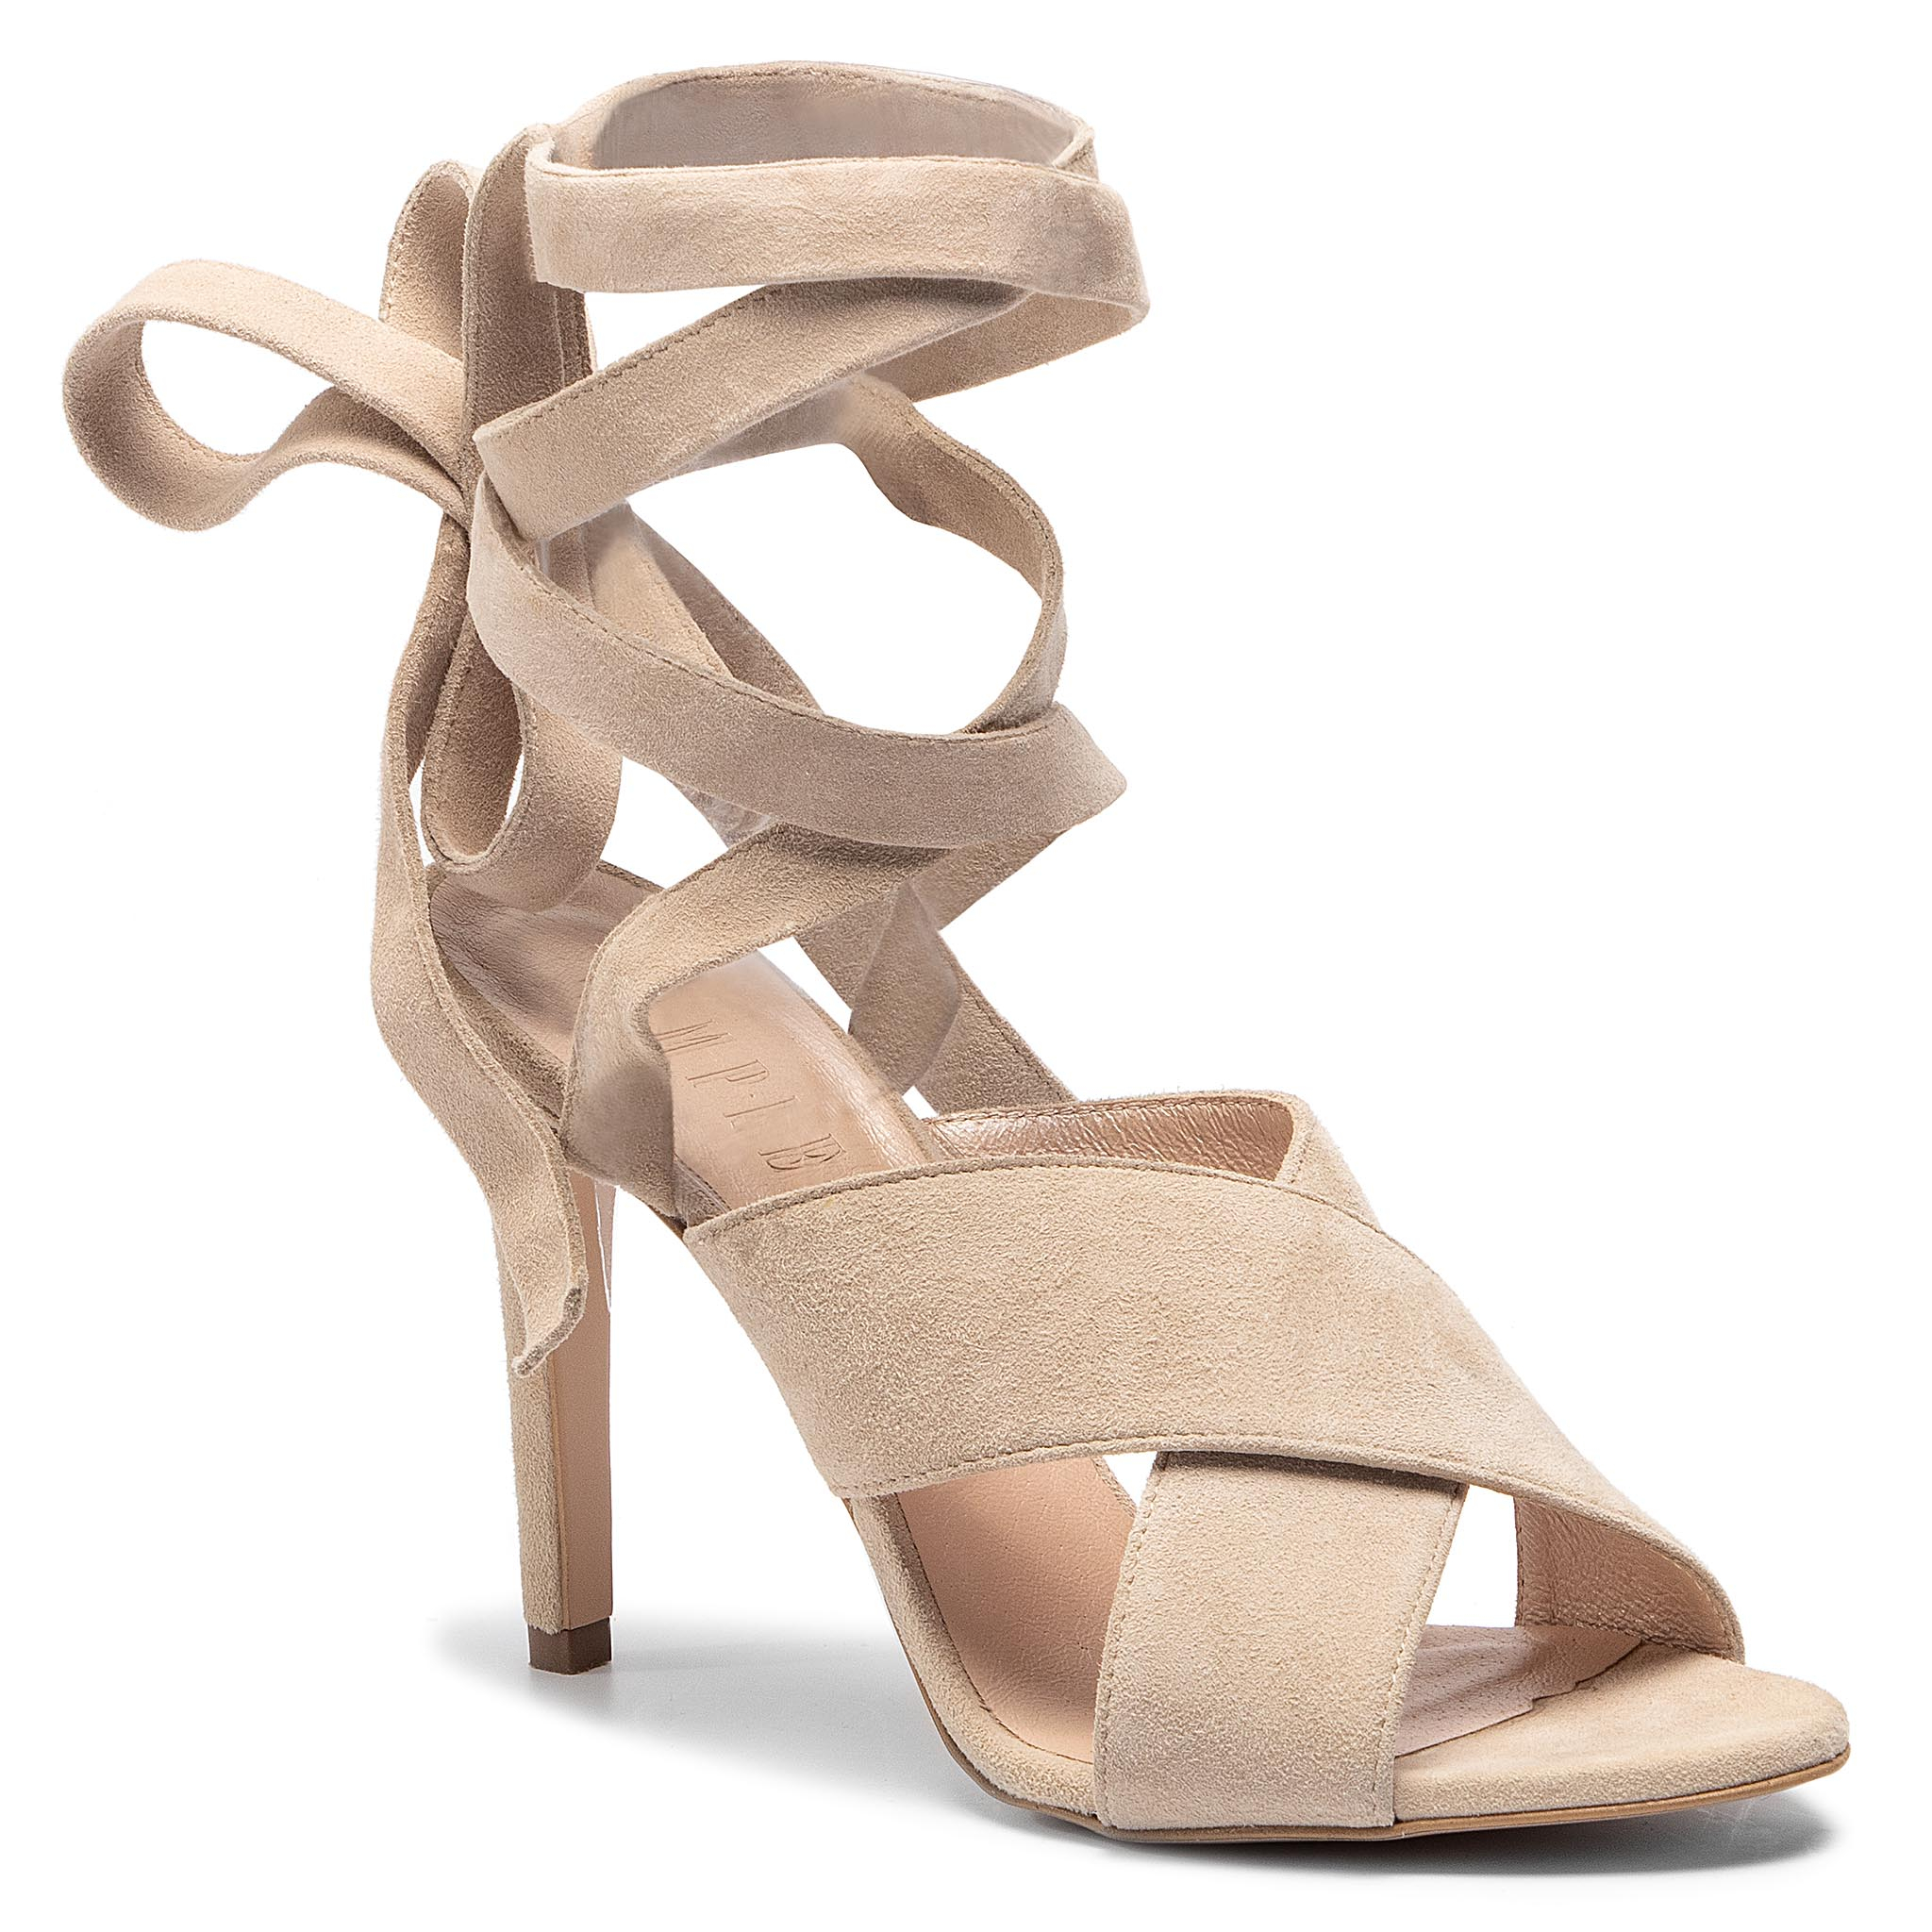 Sandales SIMPLE - Gina DNH828-BF7-0020-1700-0 02